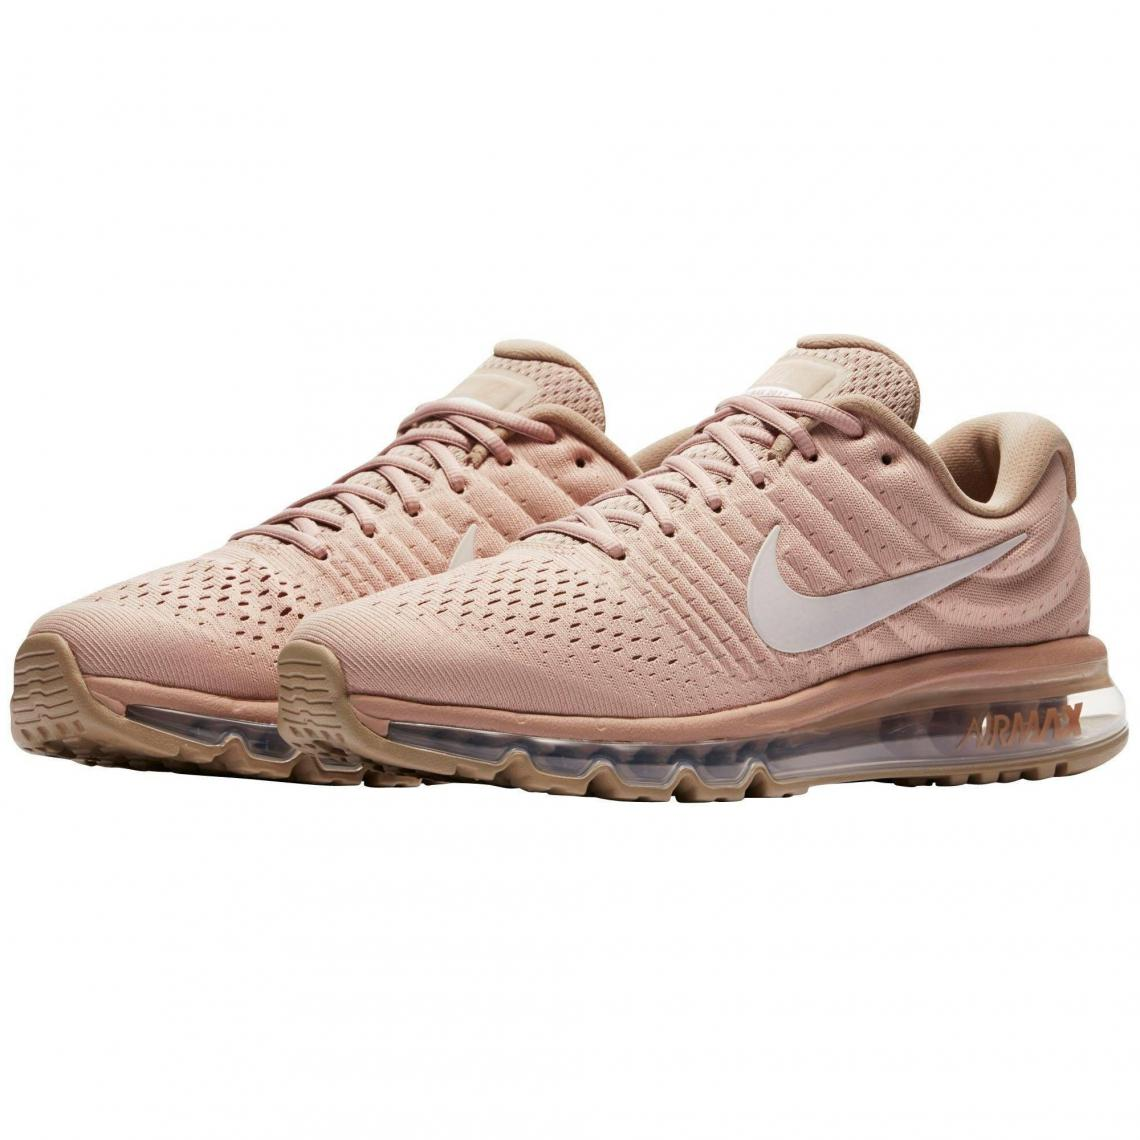 huge selection of 3e922 9ccb7 Nike Air Max 2017 chaussures de running homme - Beige - Noir | 3 SUISSES